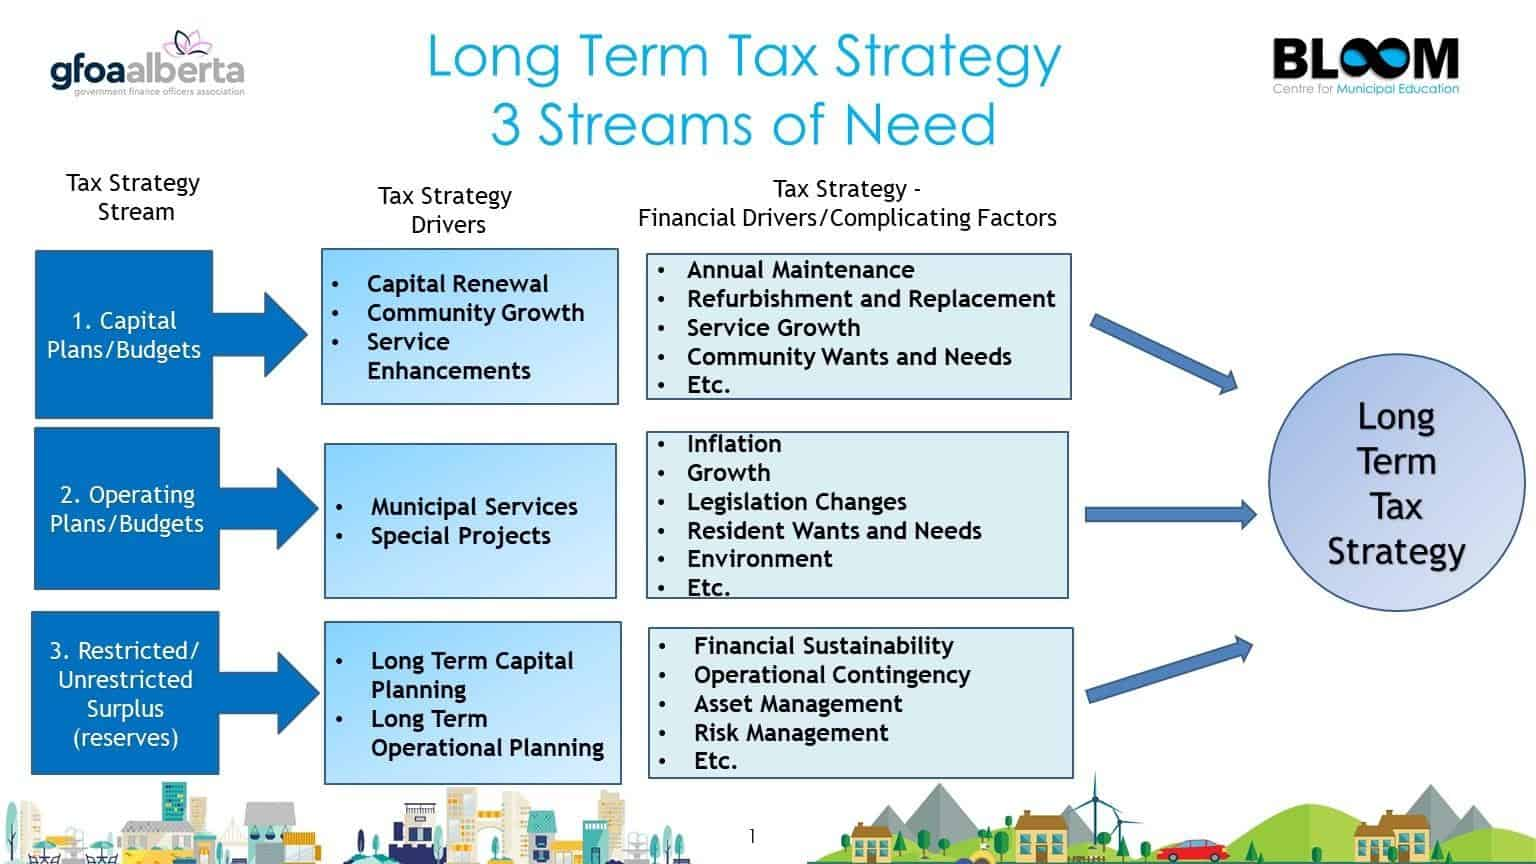 Long term tax strategy - 3 streams of need